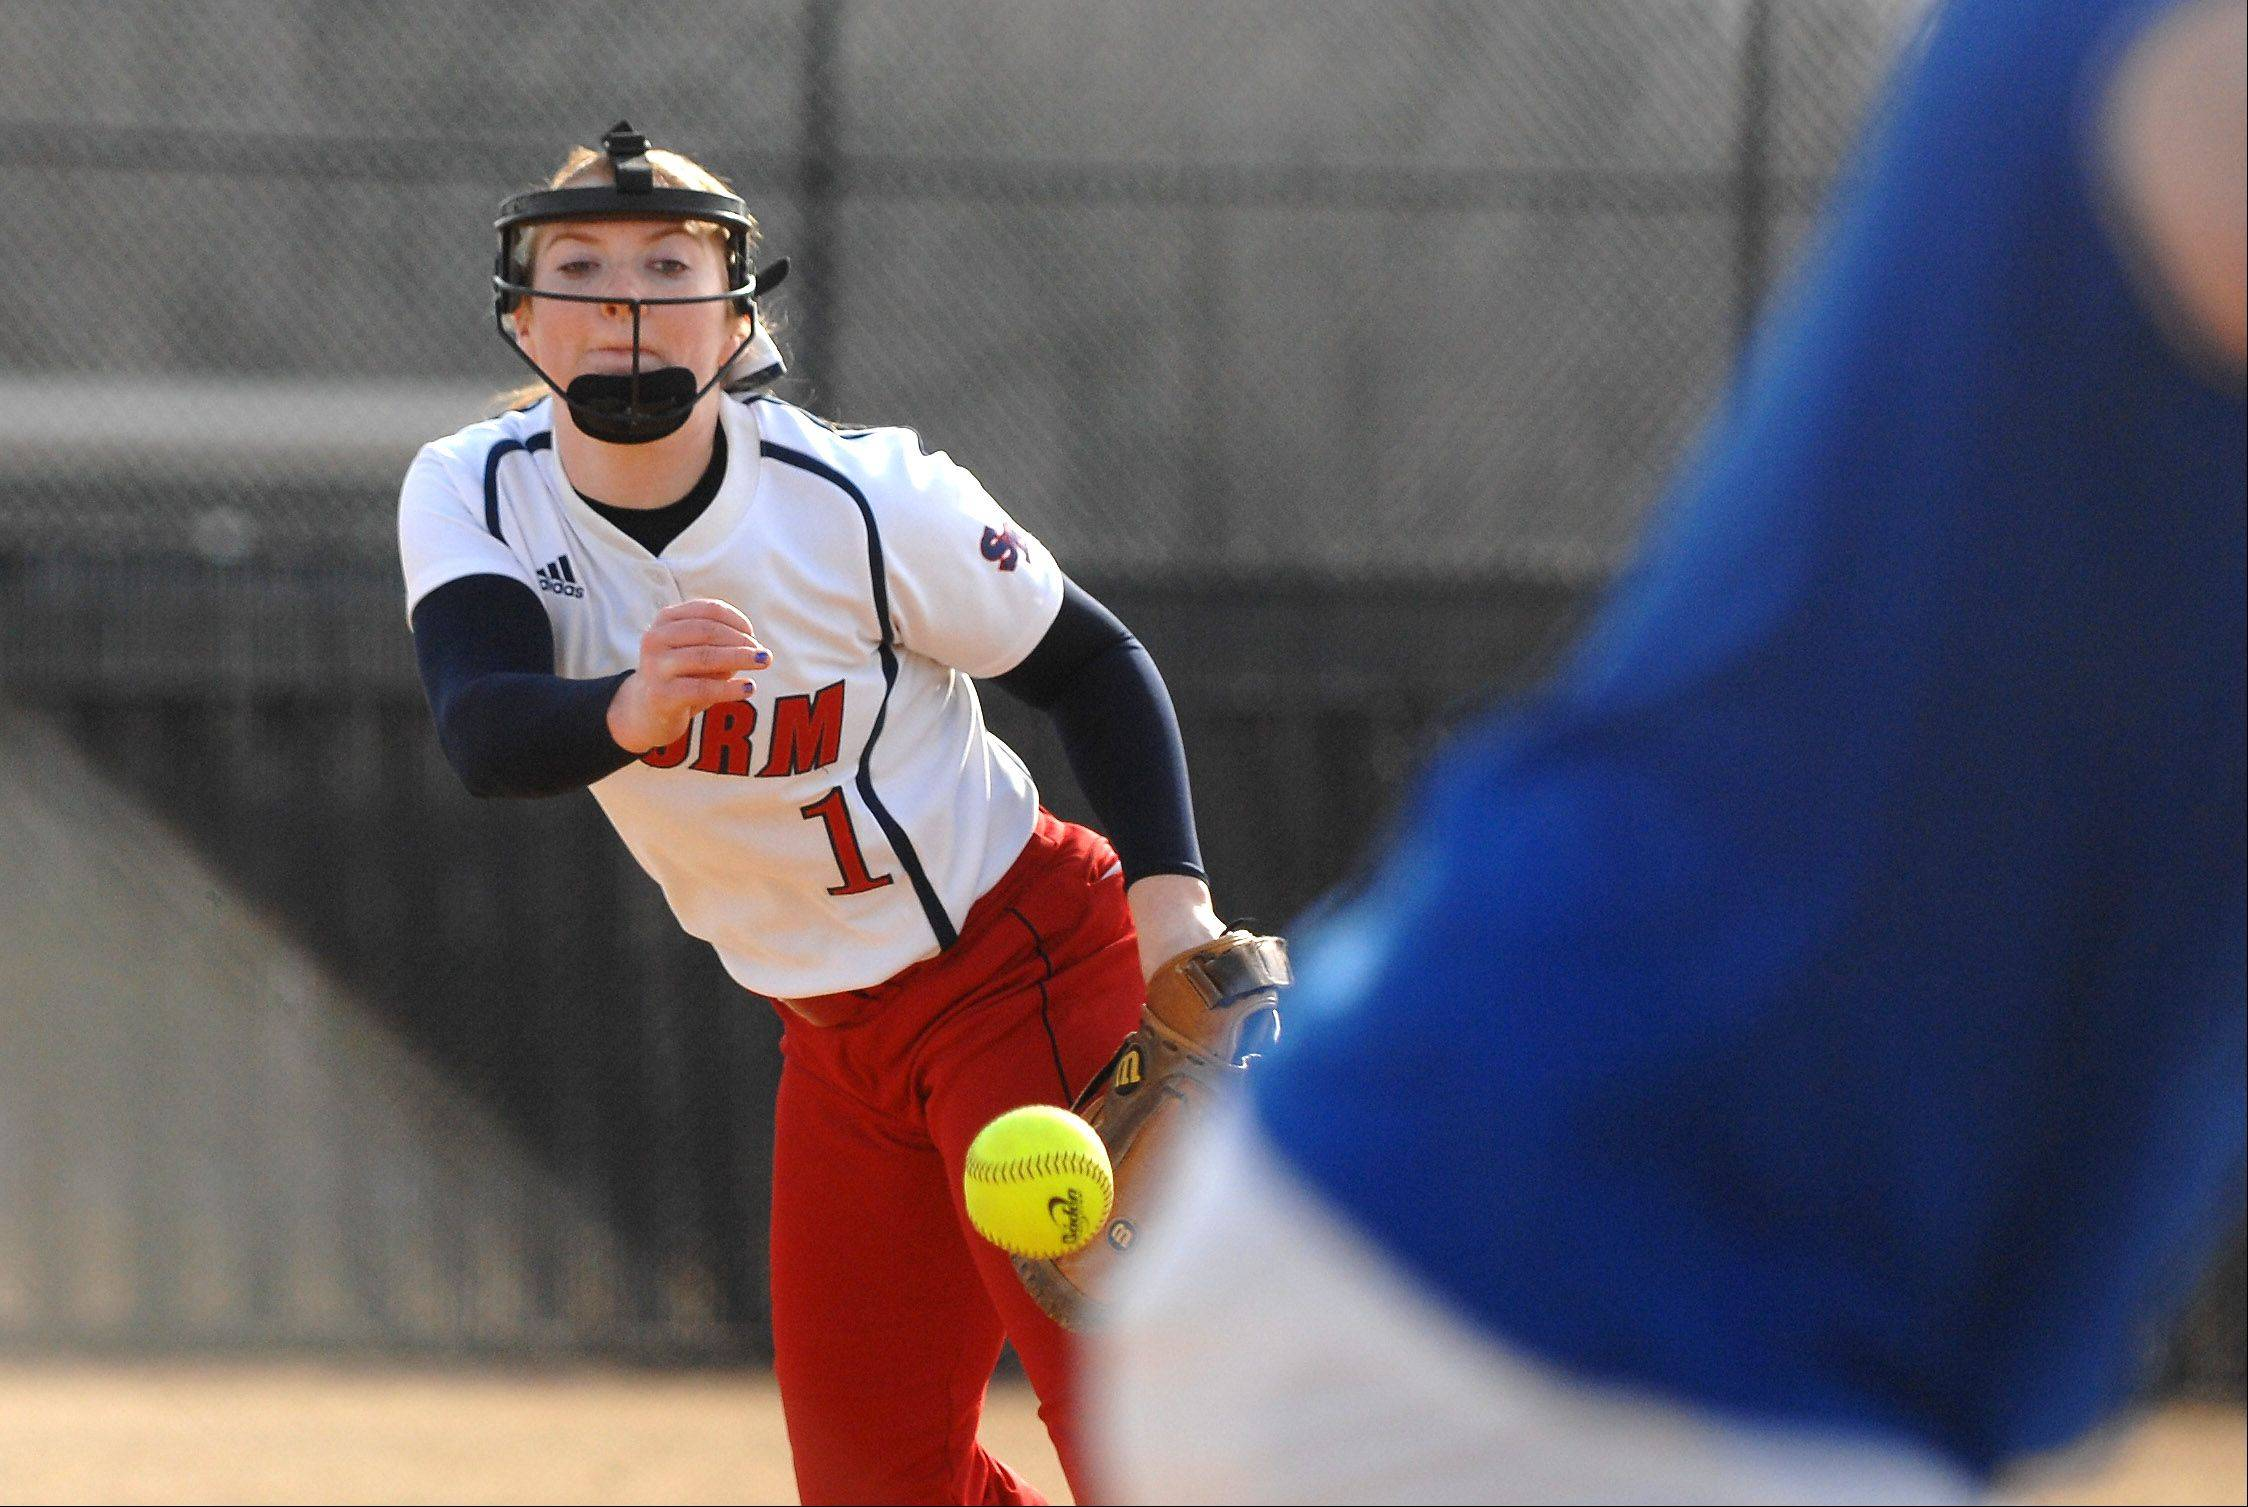 South Elgin's Paige Allen delivers a pitch to a St. Charles North batter during Friday's game in St. Charles.